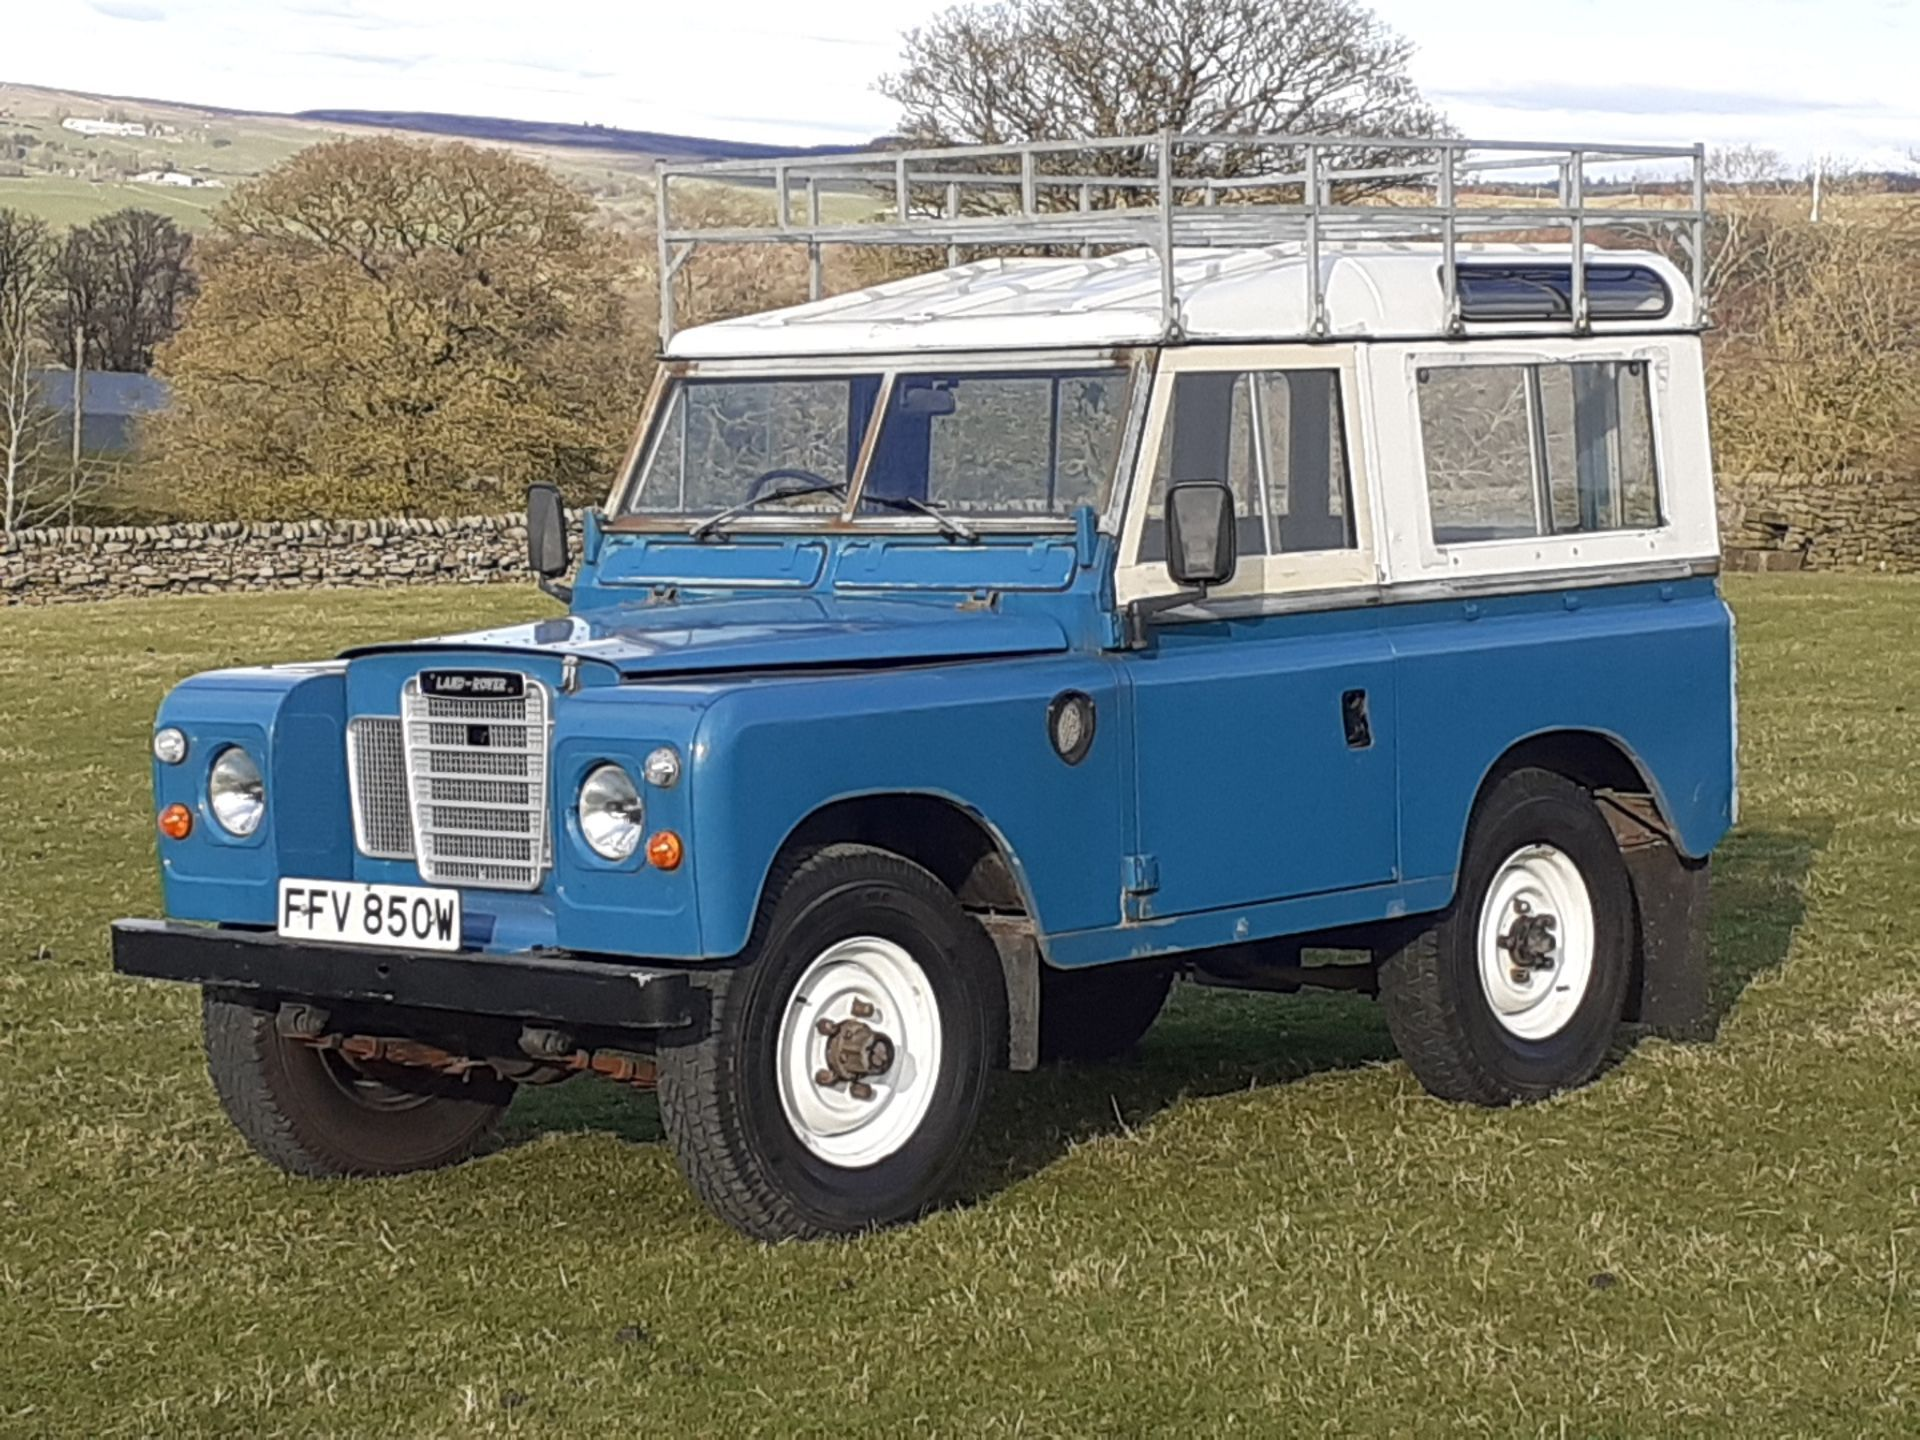 1980 LAND ROVER SERIES III CLASSIC STATION WAGON, TAX AND MOT EXEMPT *NO VAT* - Image 3 of 22